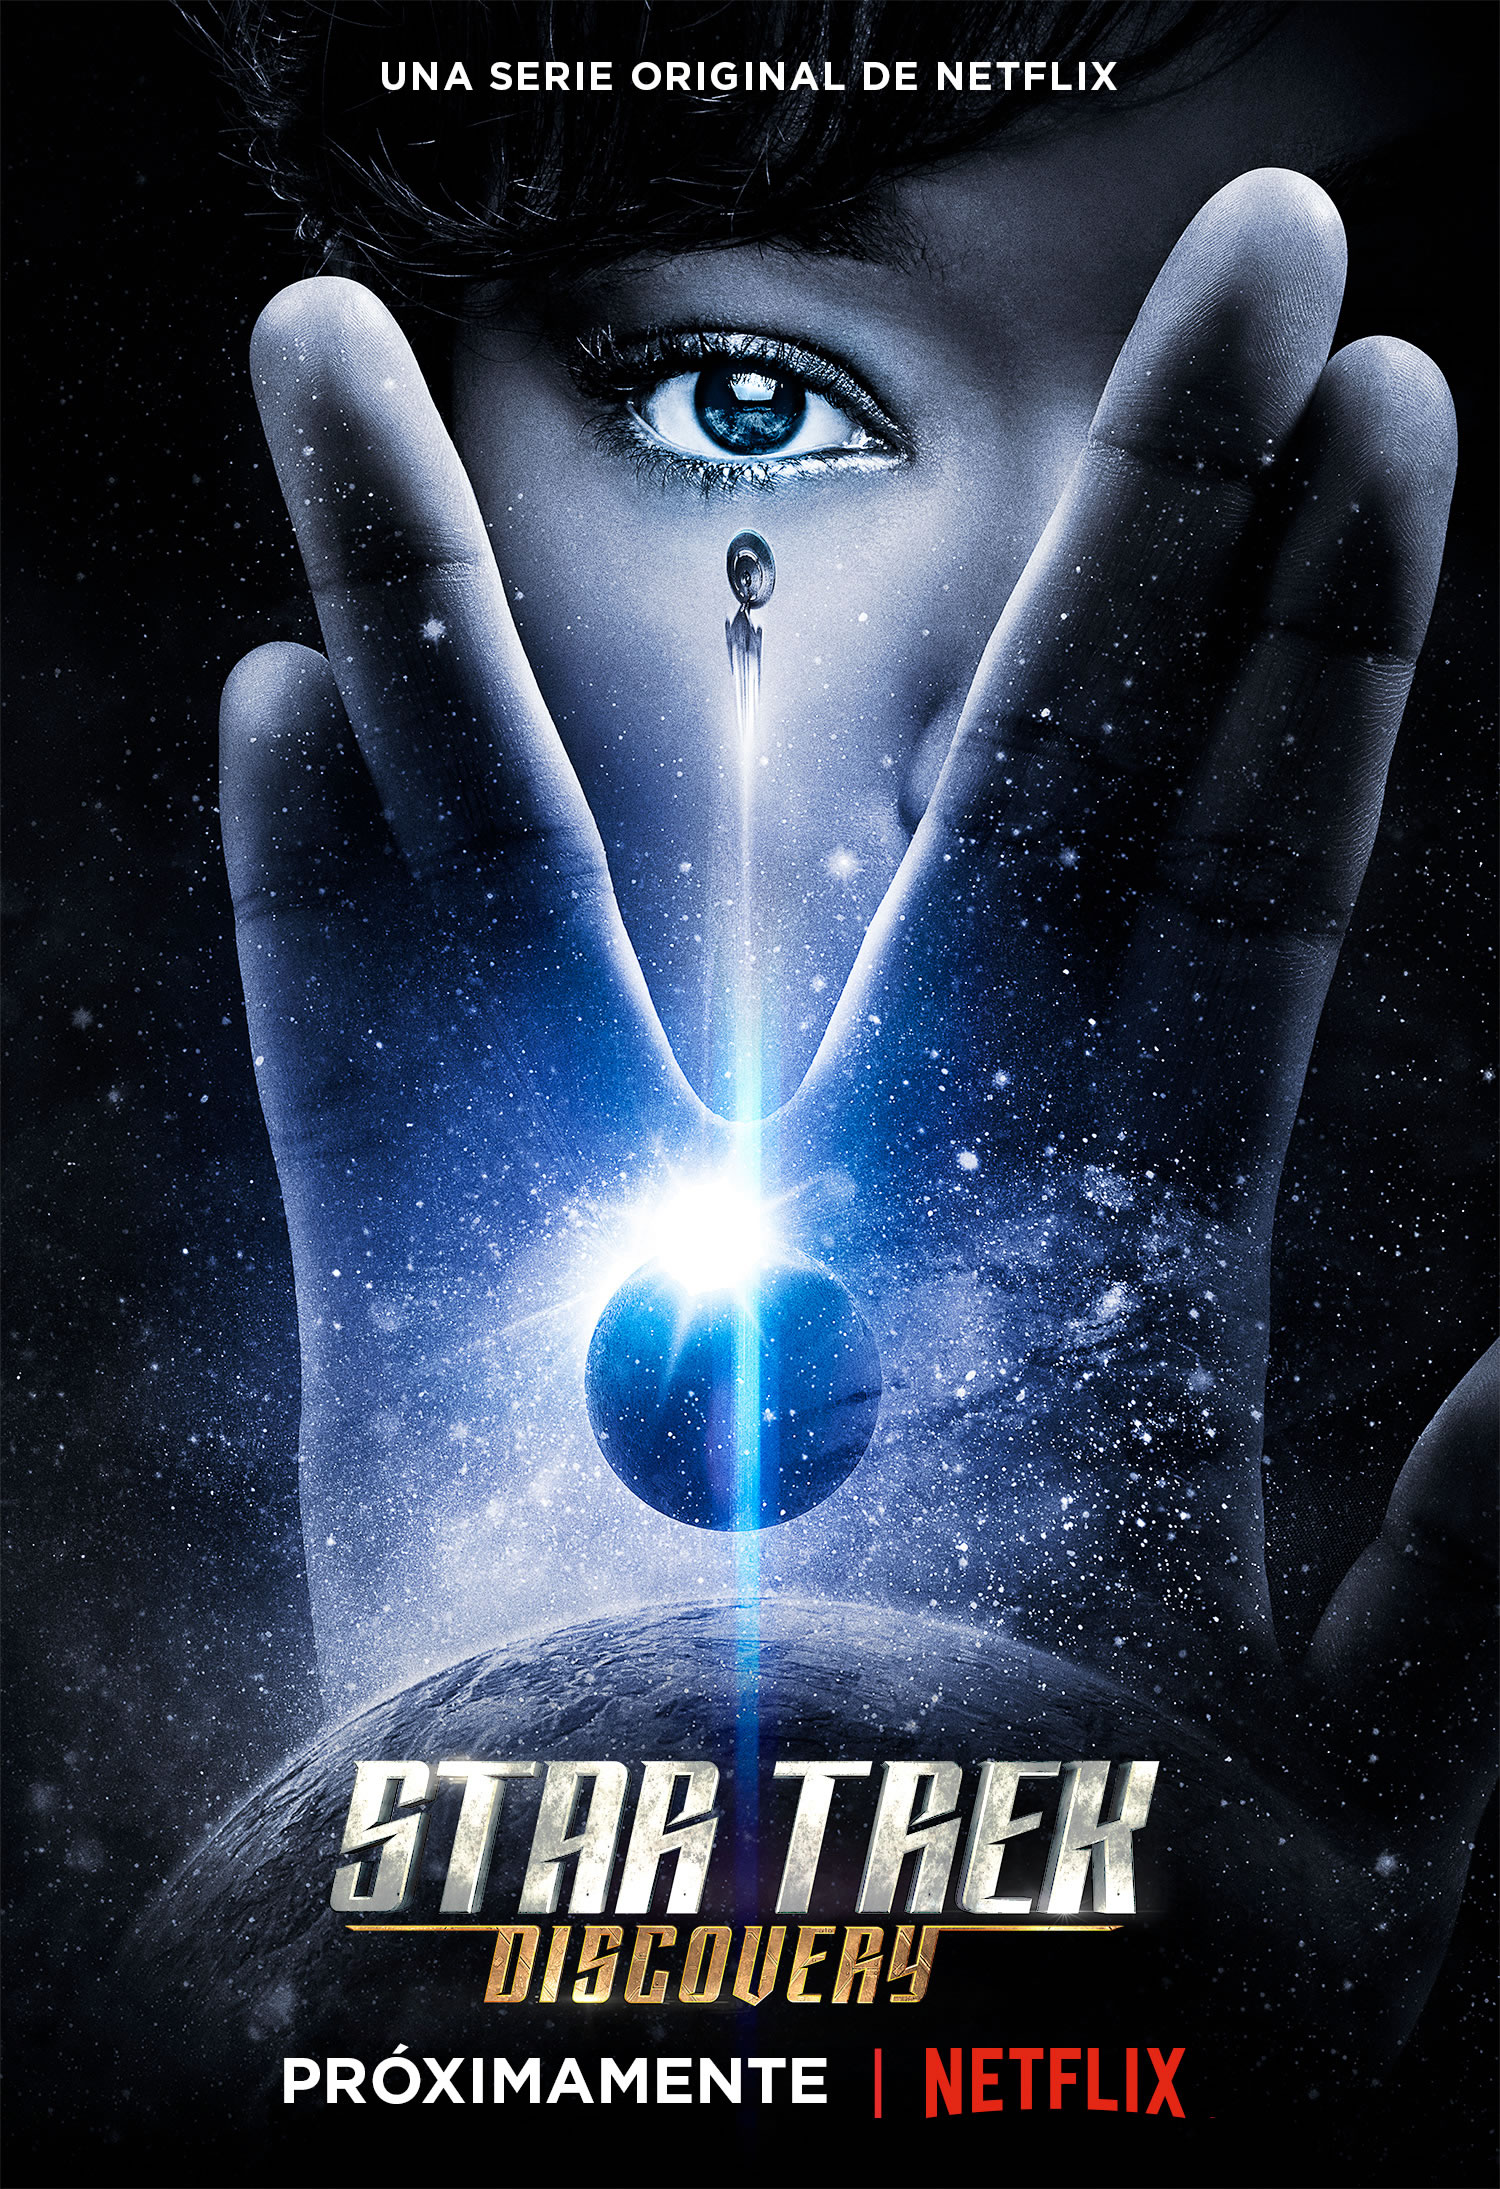 Star Trek: Discovery - Póster oficial.